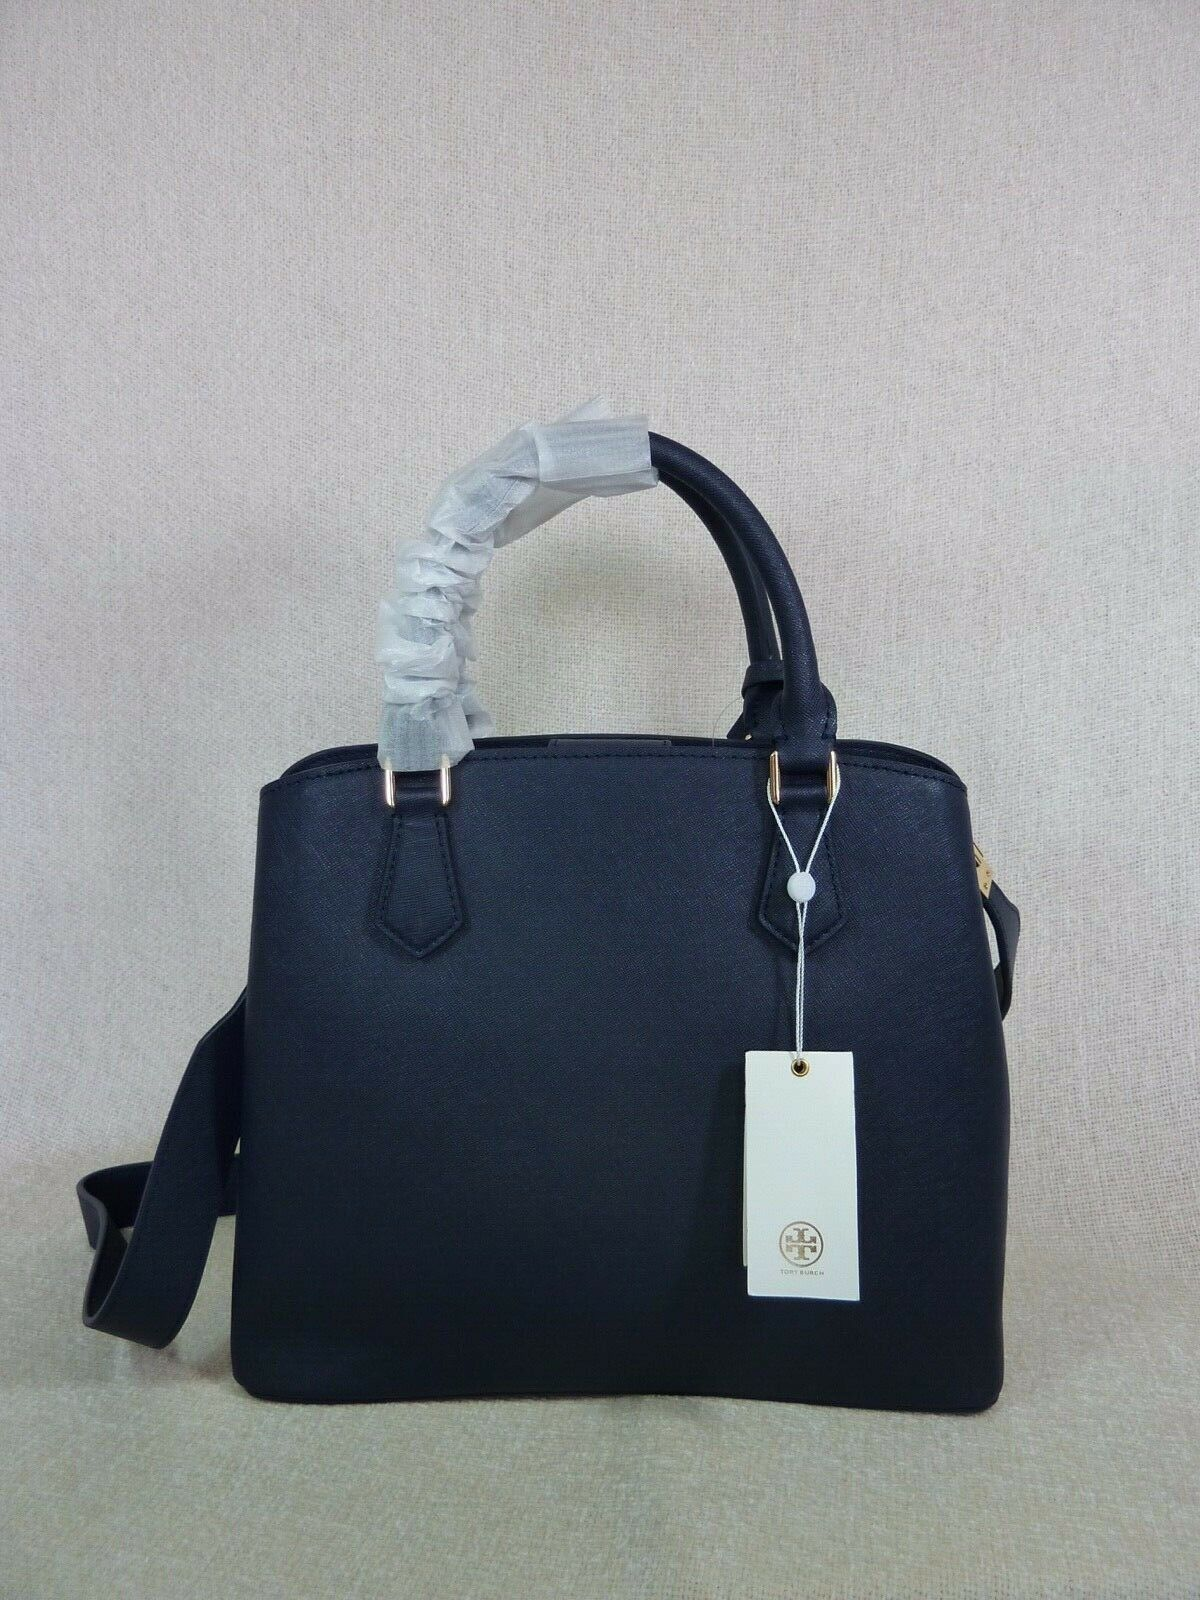 NWT Tory Burch Navy Saffiano Leather Robinson Triple-compartment Tote $458 image 4